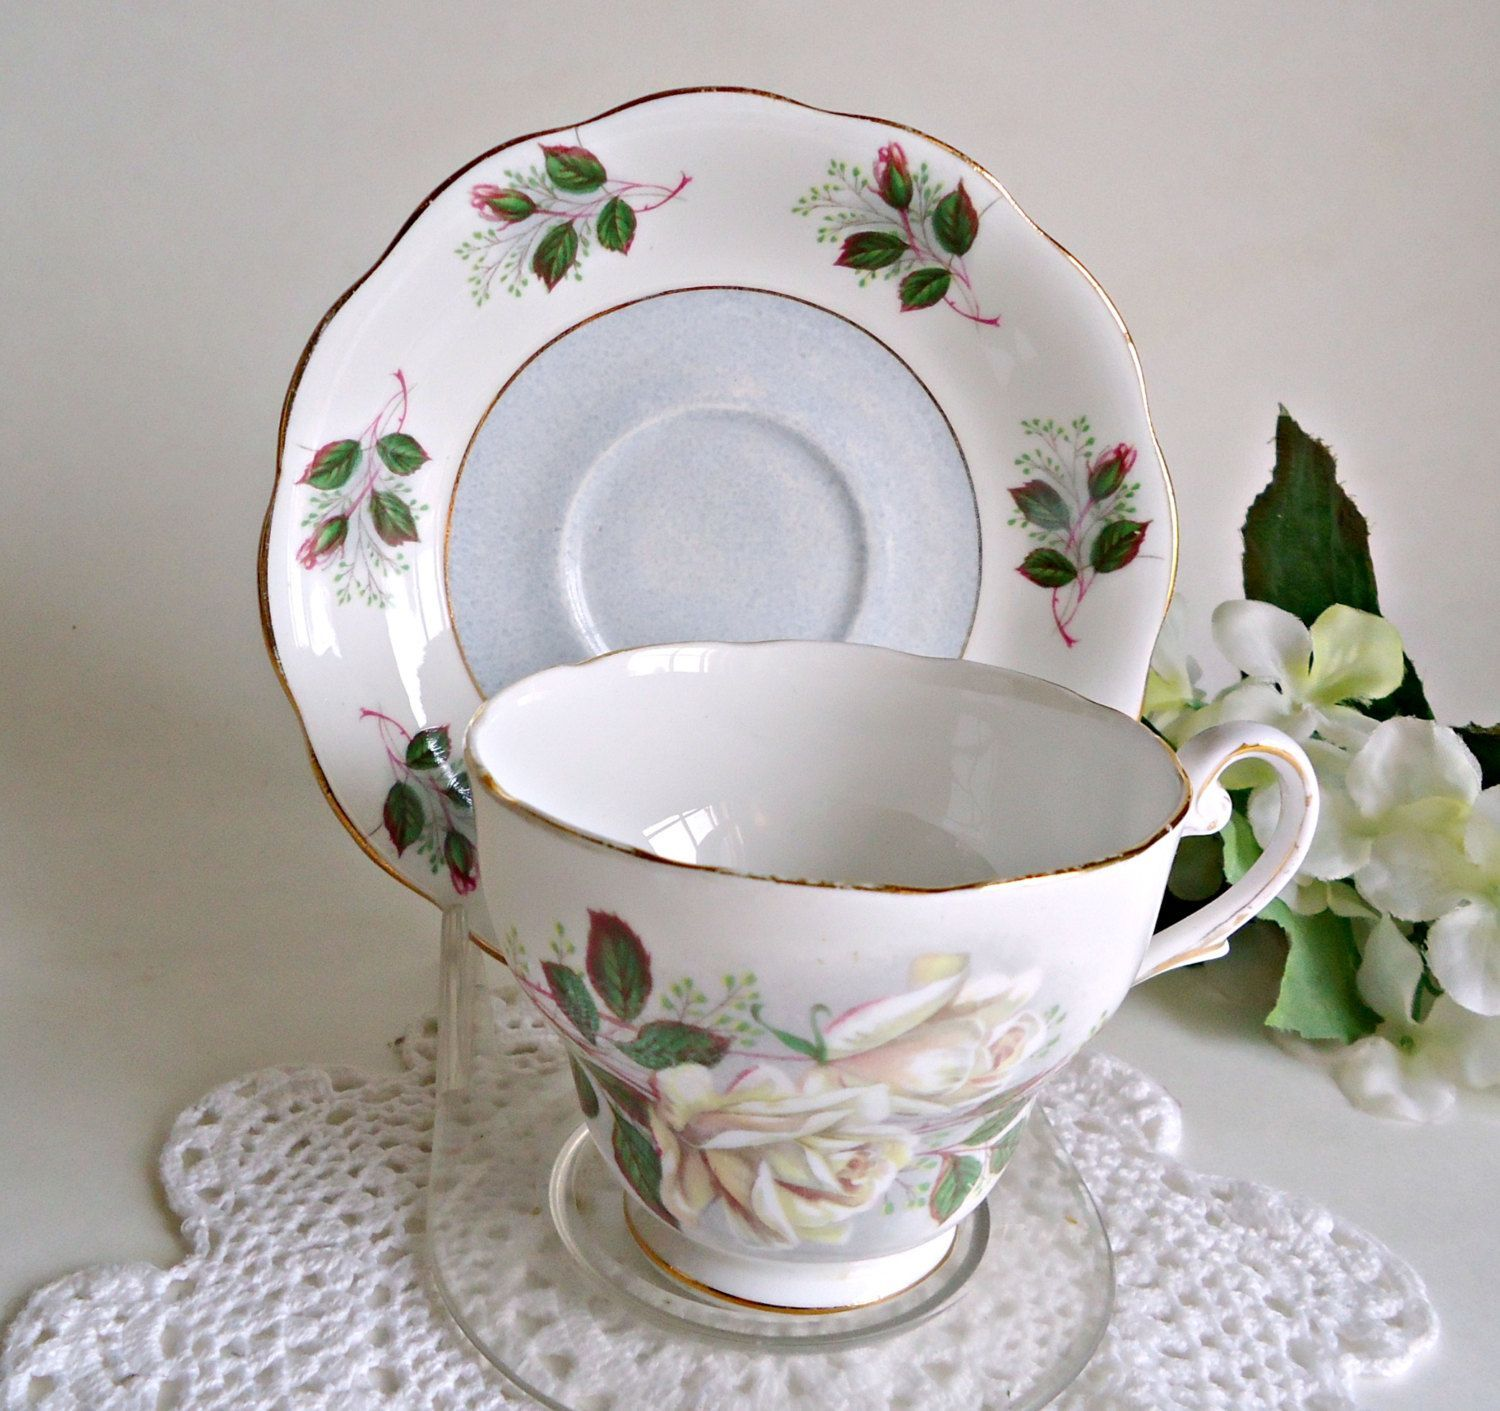 Tea Cup and Saucer Vintage Teacup and Saucer Royal Standard Bone China White Rose